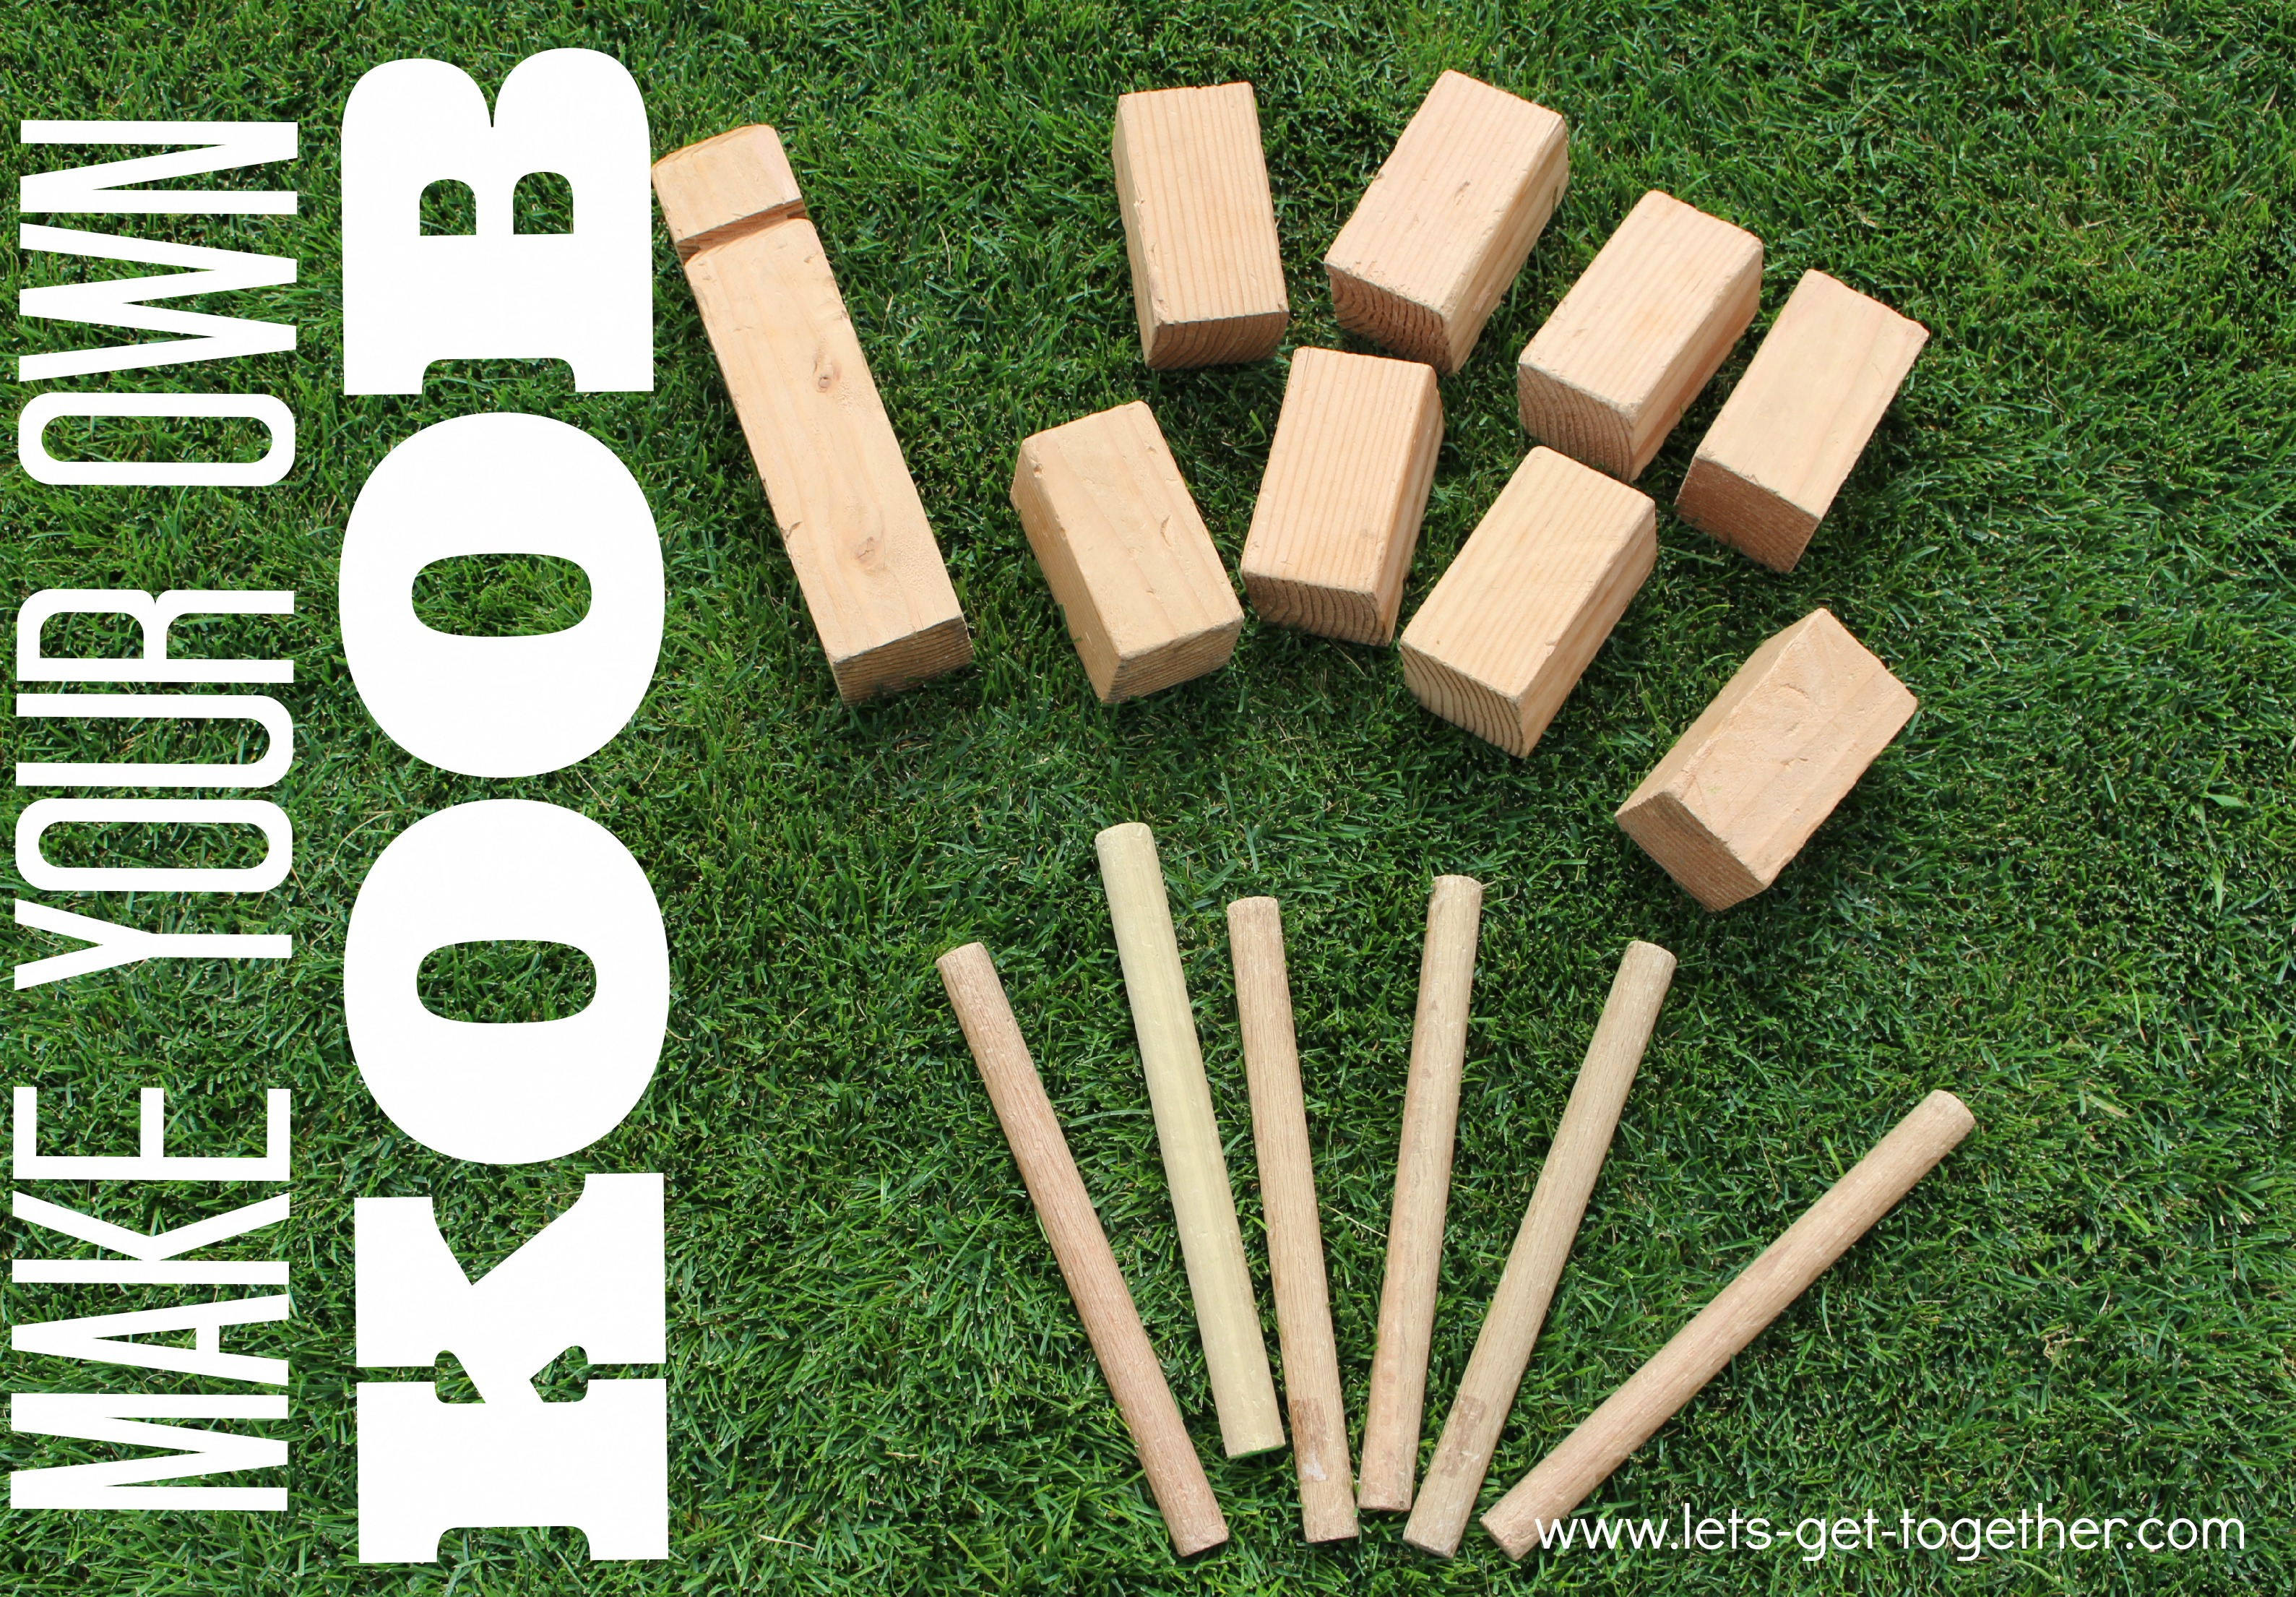 Diy koob the best lawn game ever Homemade games for adults